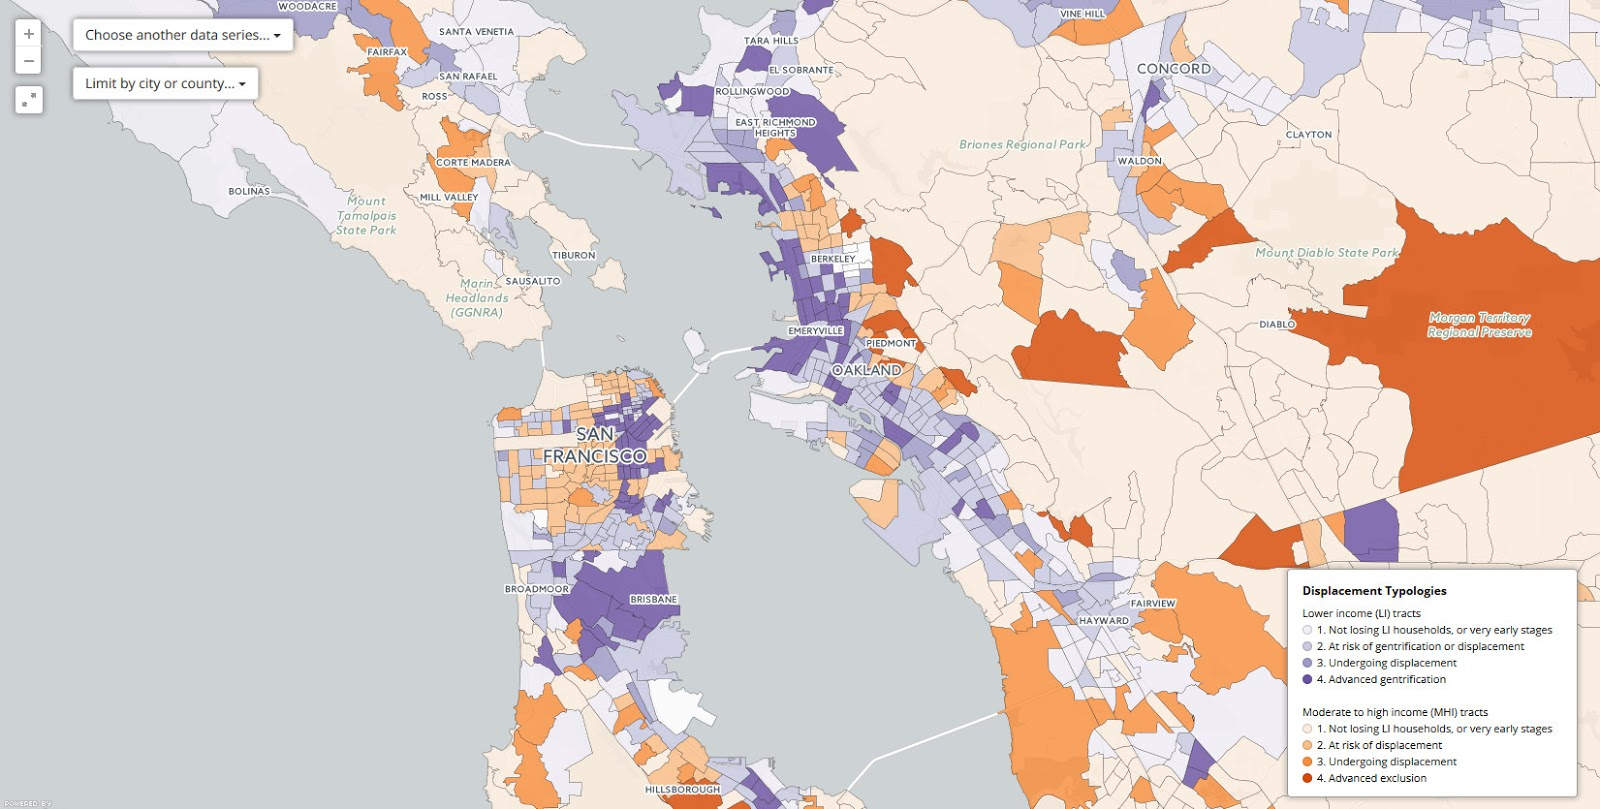 Mapping Displacement and Gentrification in the San Francisco Bay Area